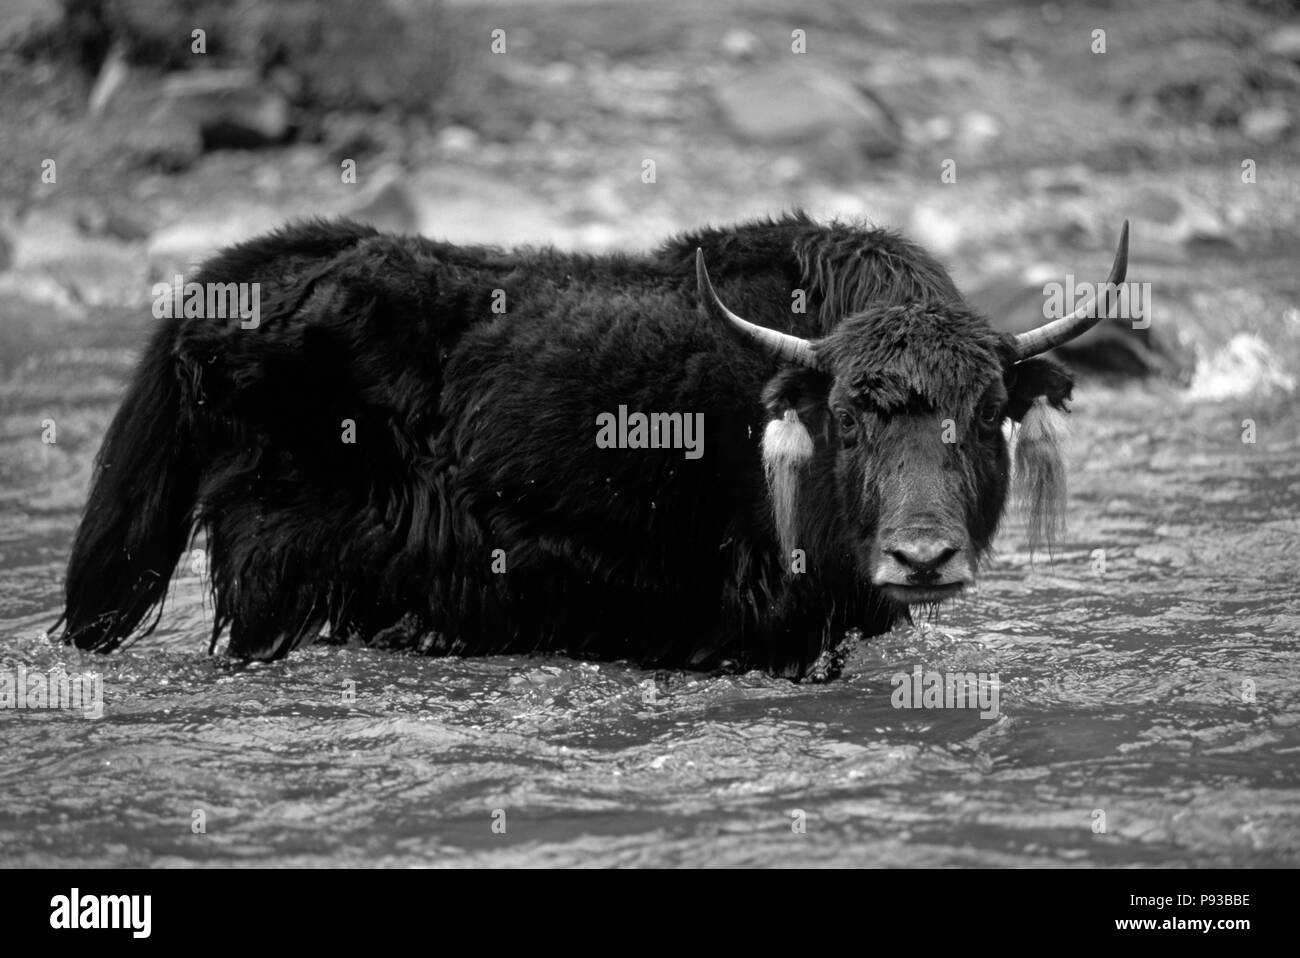 A BLACK YAK (Bos grunniens) crosses the river leading to Terdrom Nunnery - CENTRAL TIBET - Stock Image